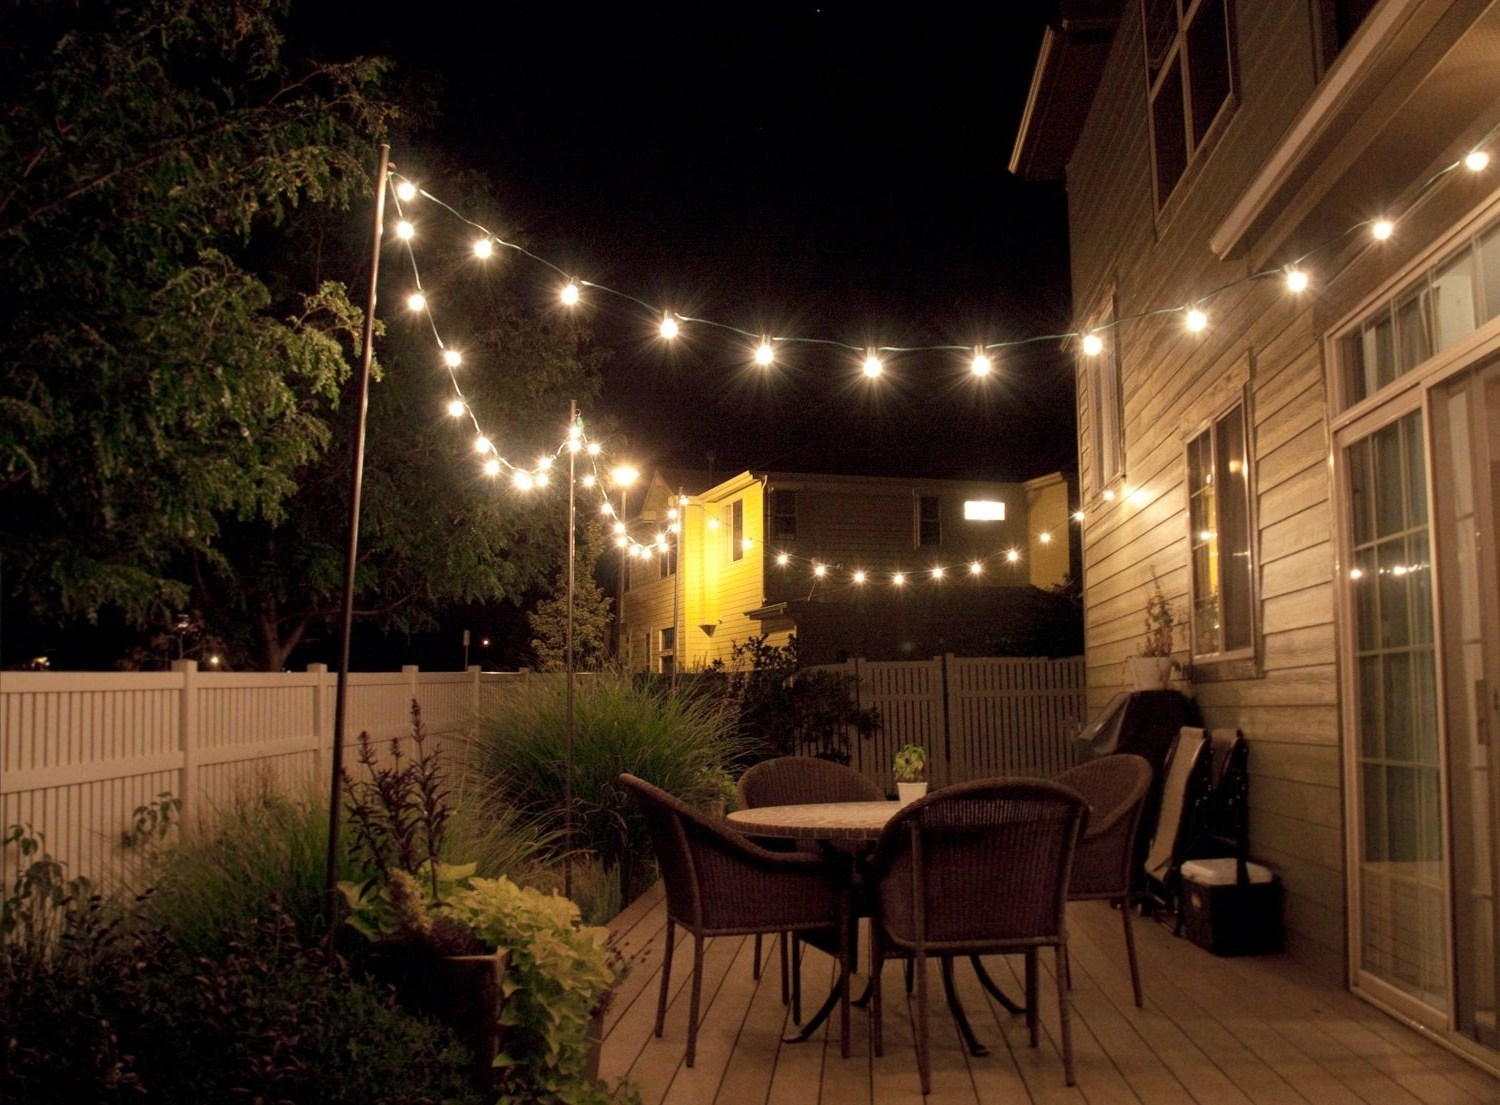 Widely Used Outdoor Hanging String Lights From Australia Intended For How To Make Inexpensive Poles To Hang String Lights On – Café Style (View 17 of 20)